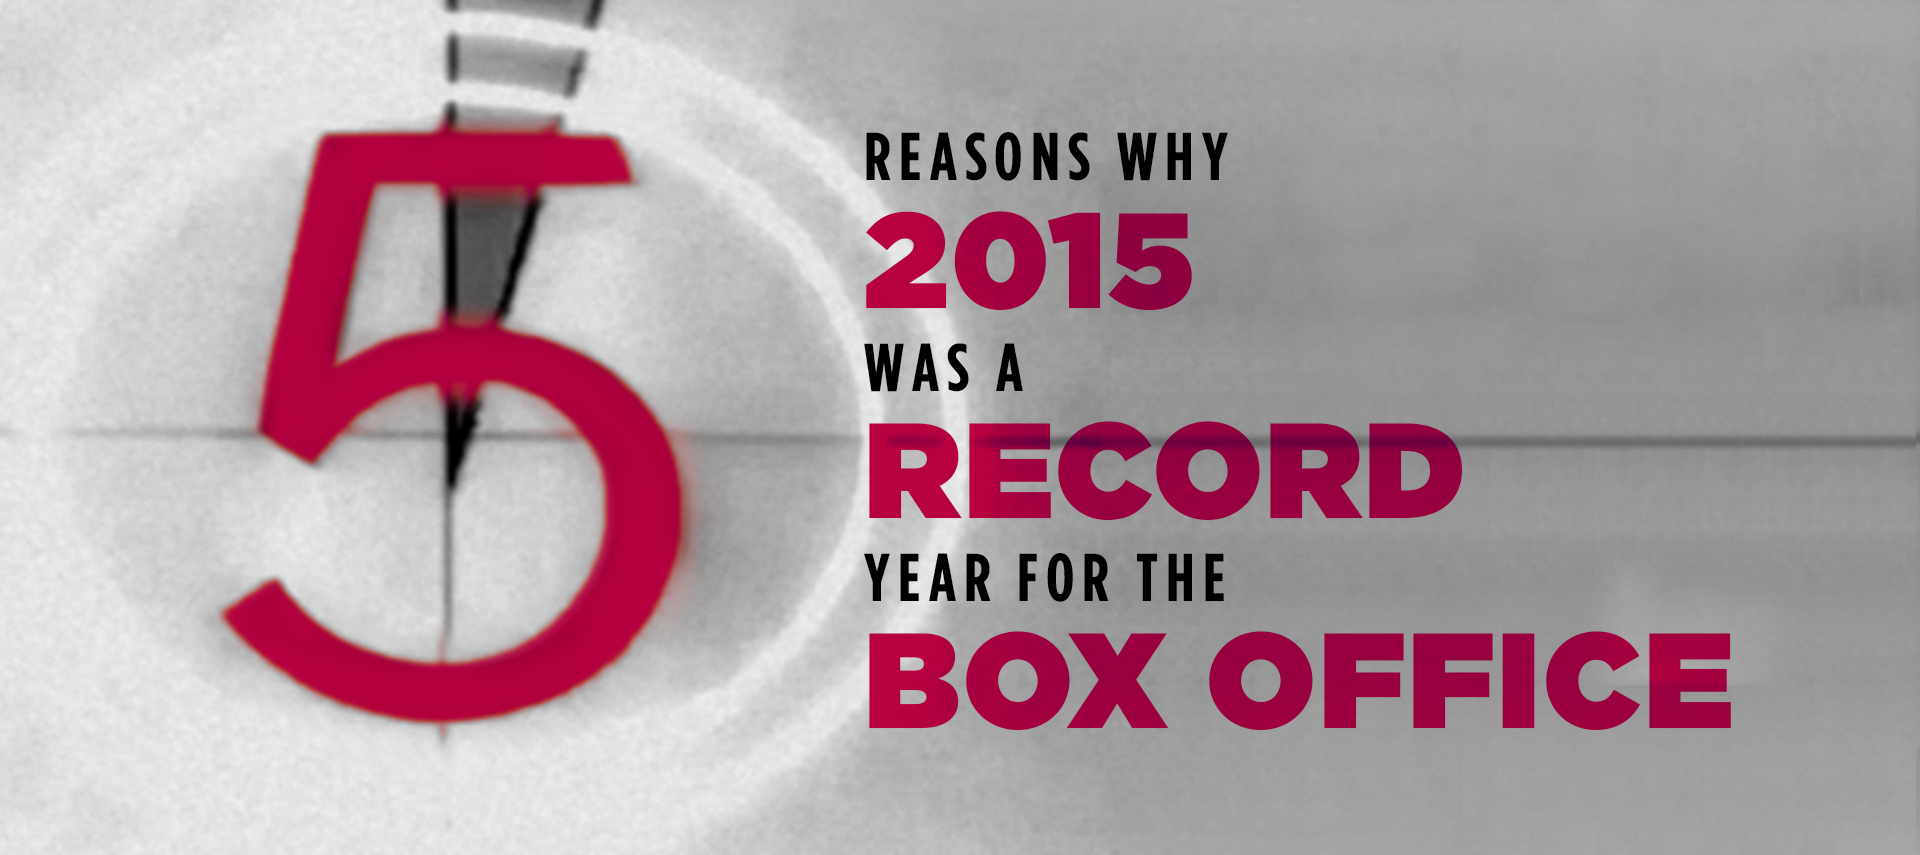 5 reasons why 2015 was a record year for box office